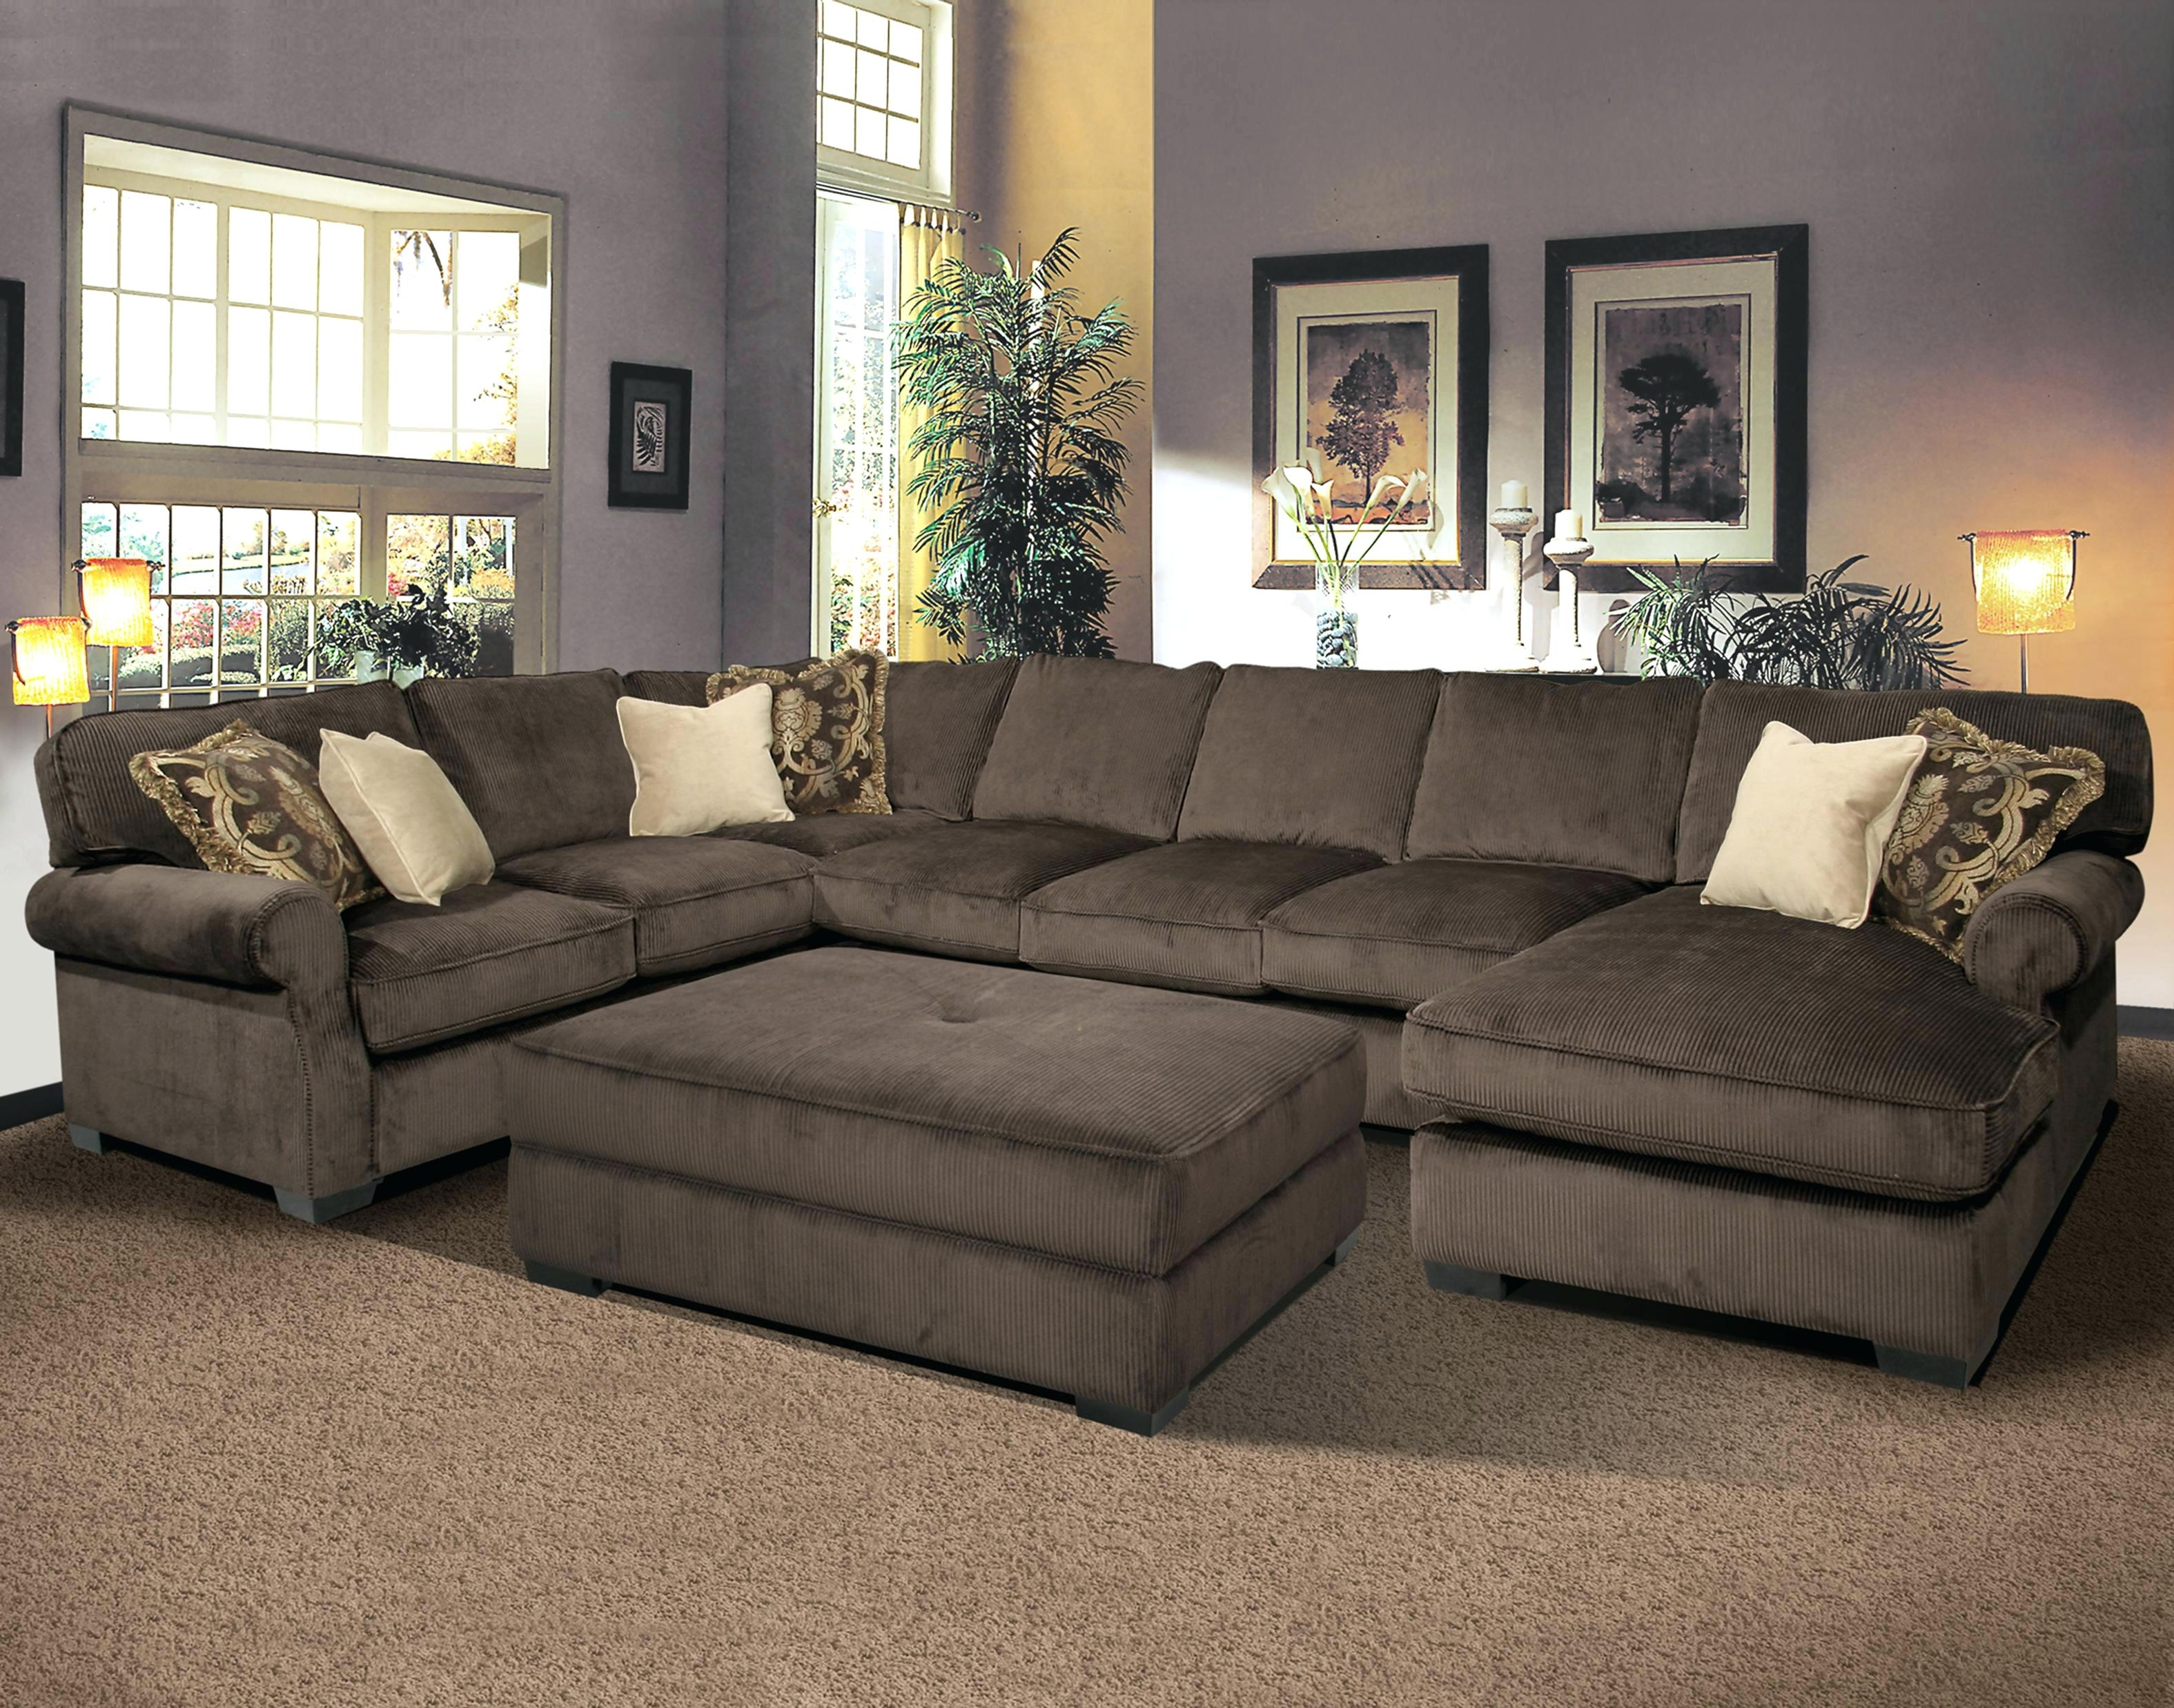 Extra Large Sectional Sofas Leather Couches With Recliners Modern For Huge U Shaped Sectionals (View 4 of 15)